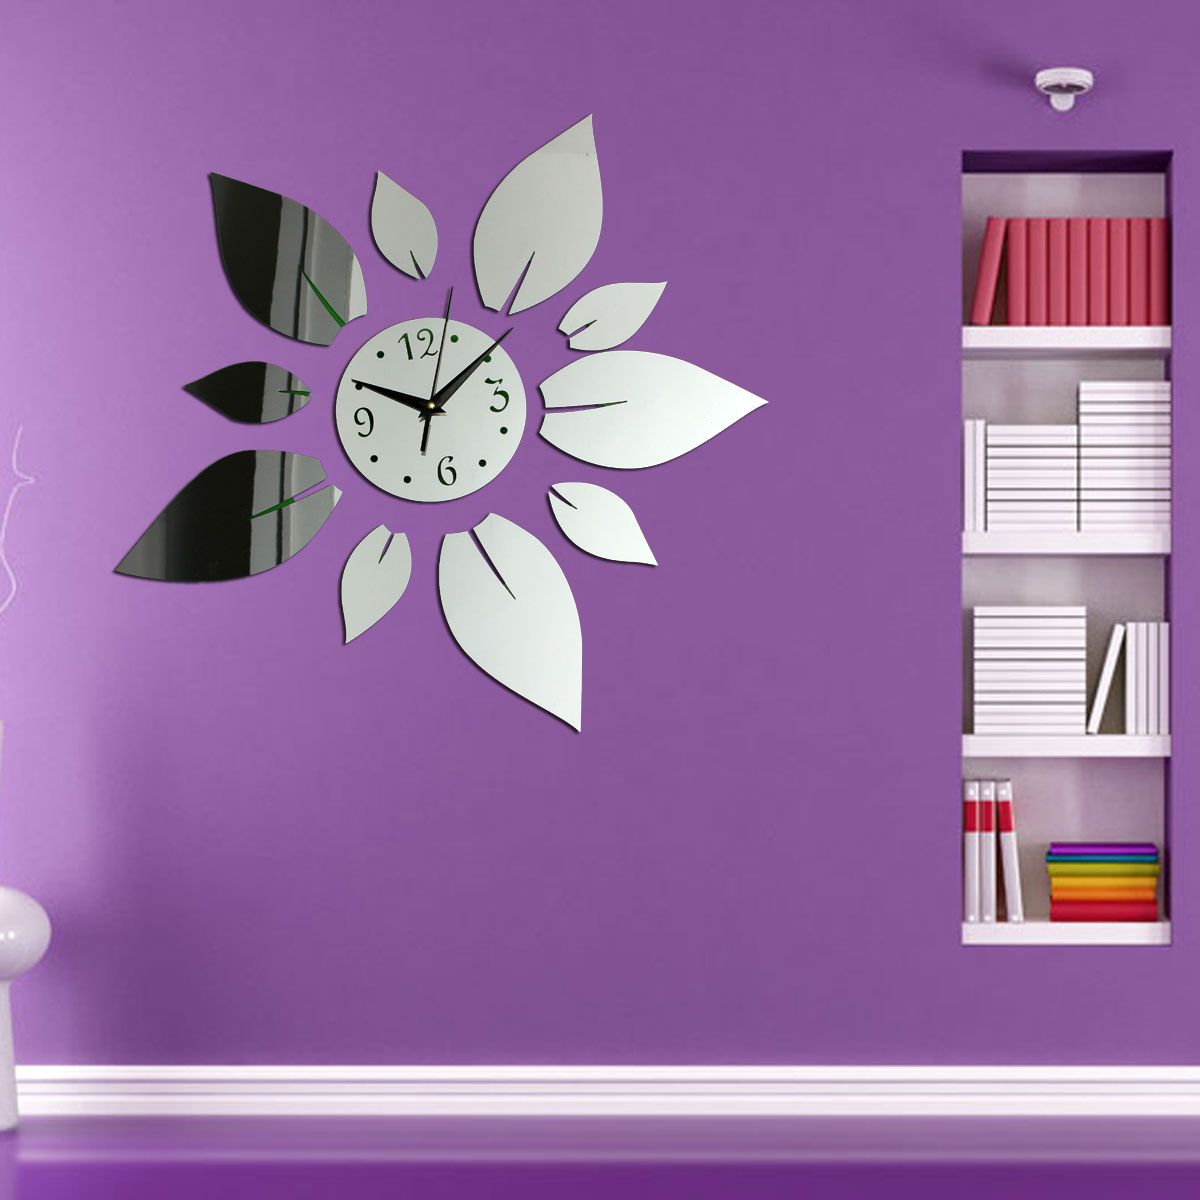 flower petals wall clock sticker diy mirror decal home. Black Bedroom Furniture Sets. Home Design Ideas